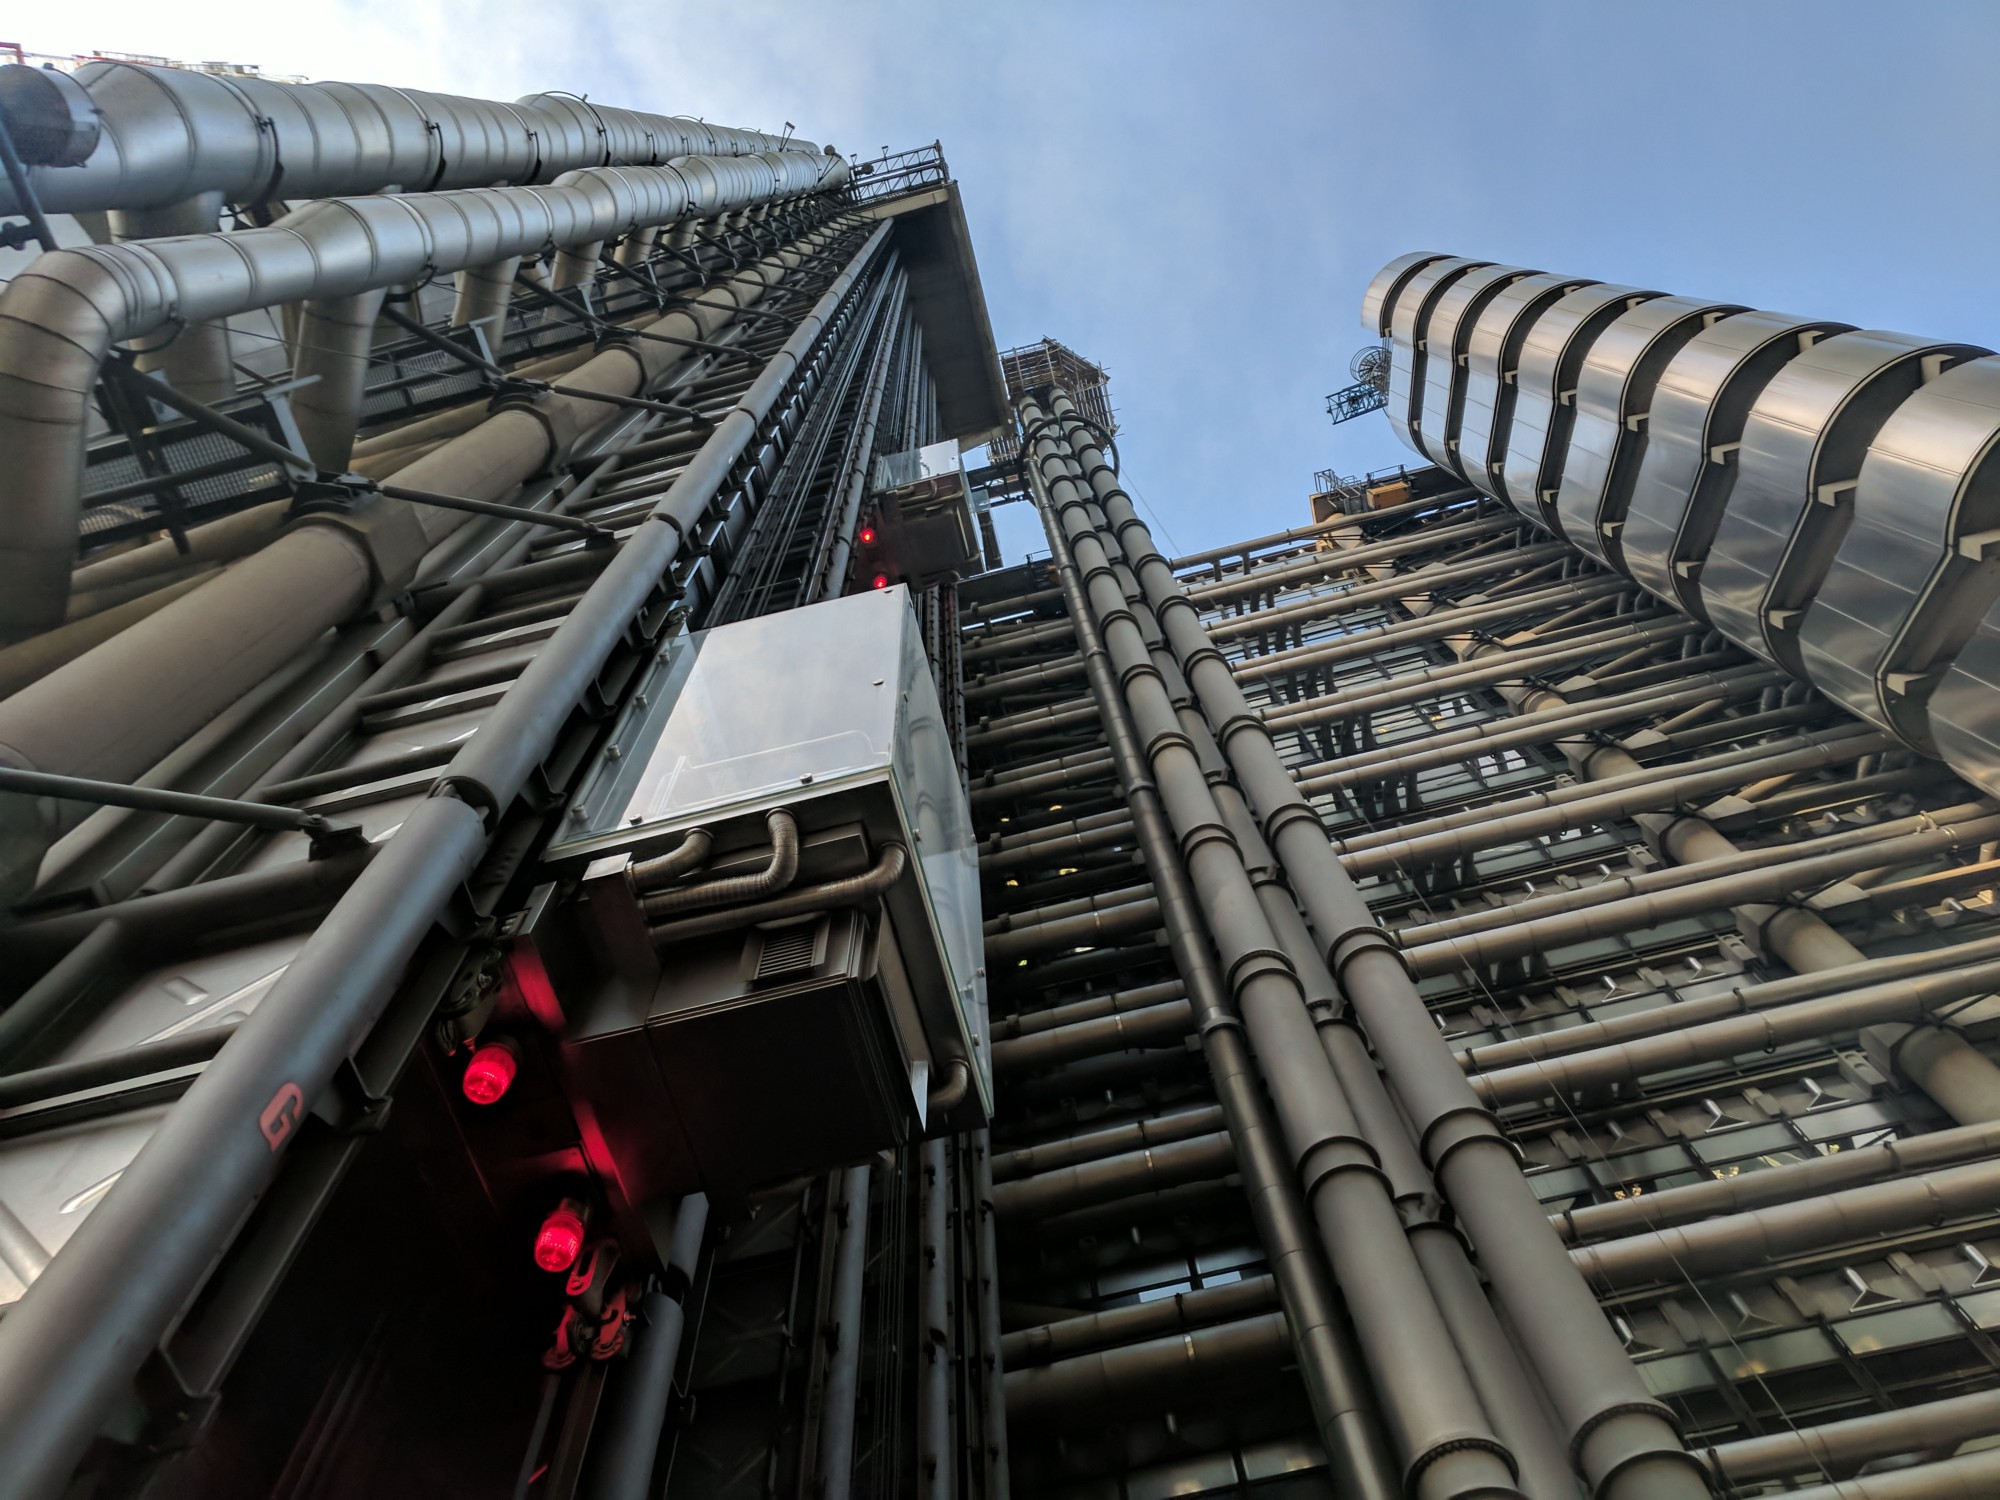 Lloyds of London building. Metallic pipes covering the outside of the building